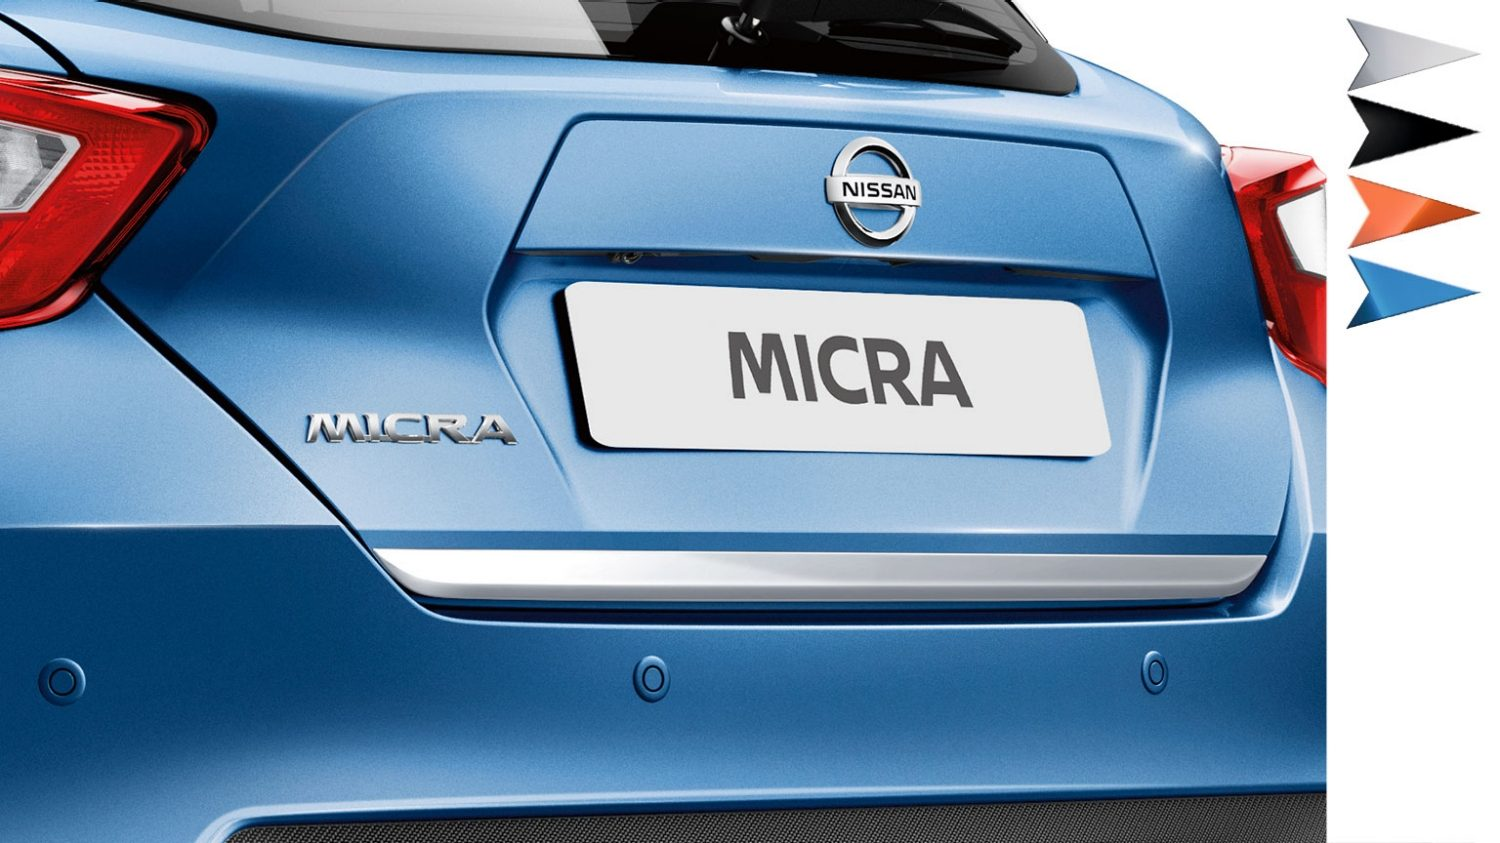 Nissan Micra Design Studio Lower Boot Finisher